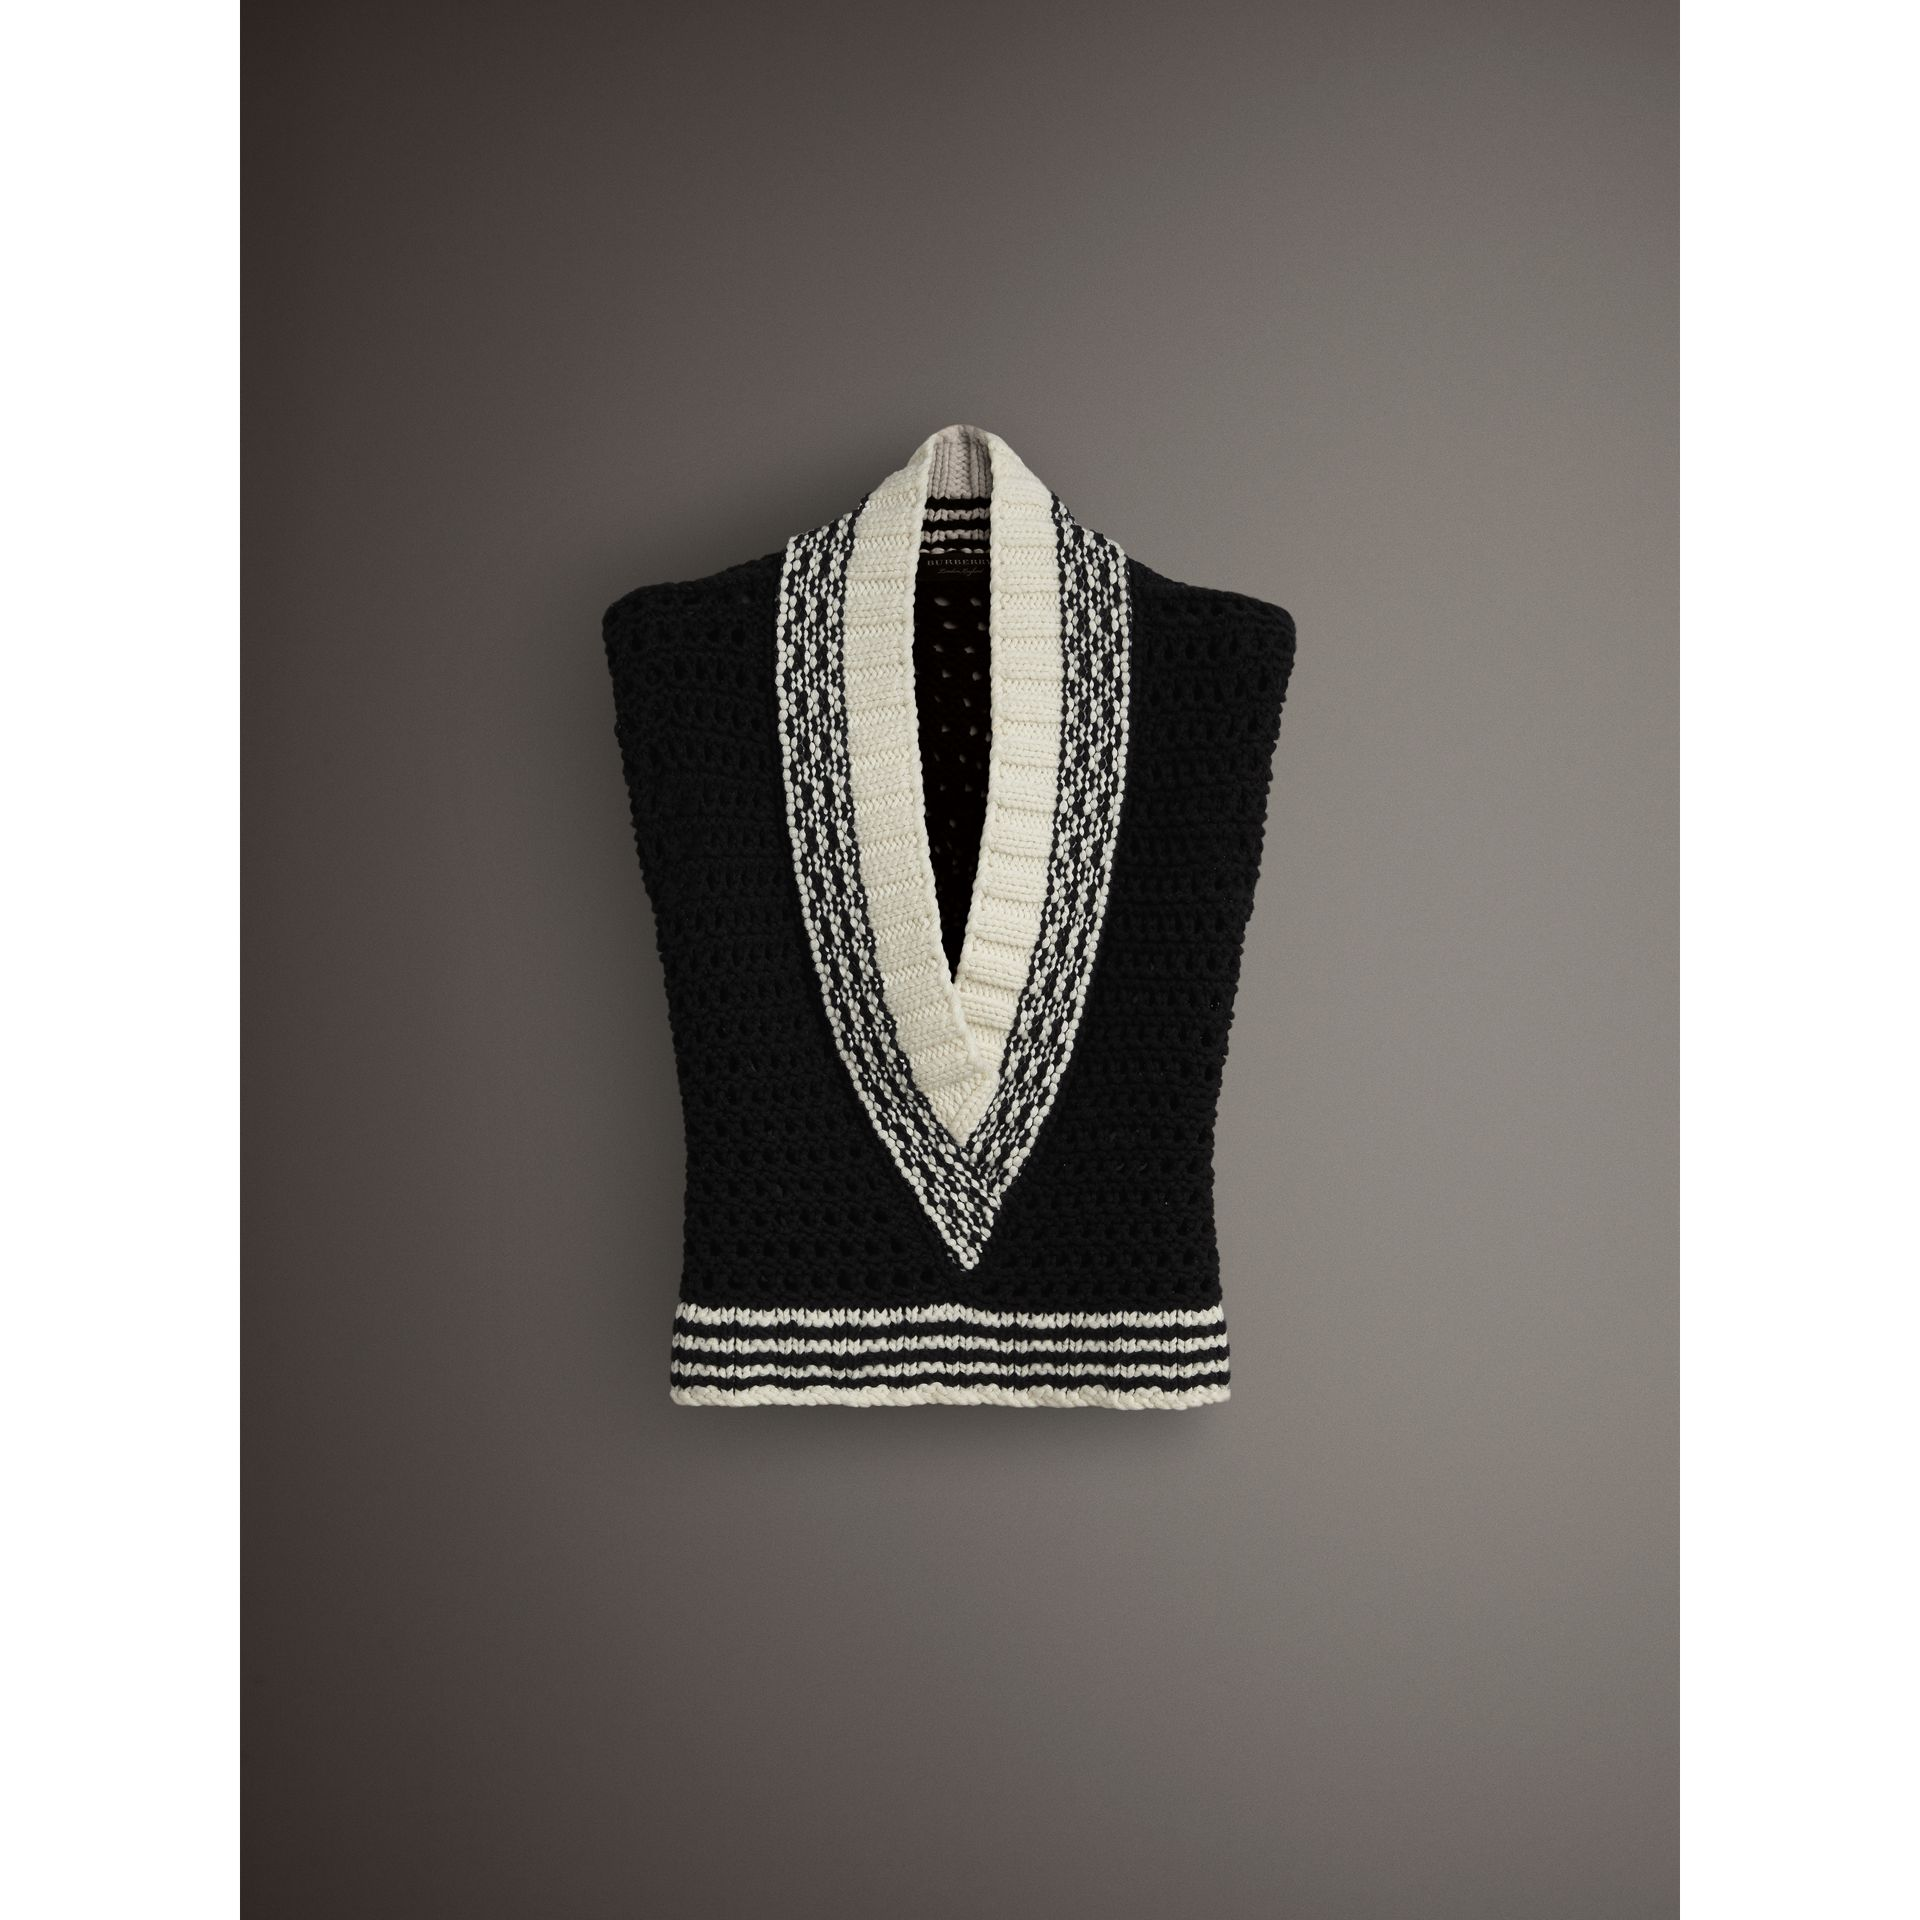 Cap-sleeve Knitted Wool V-neck Tank Top in Black/white - Women | Burberry United Kingdom - gallery image 3